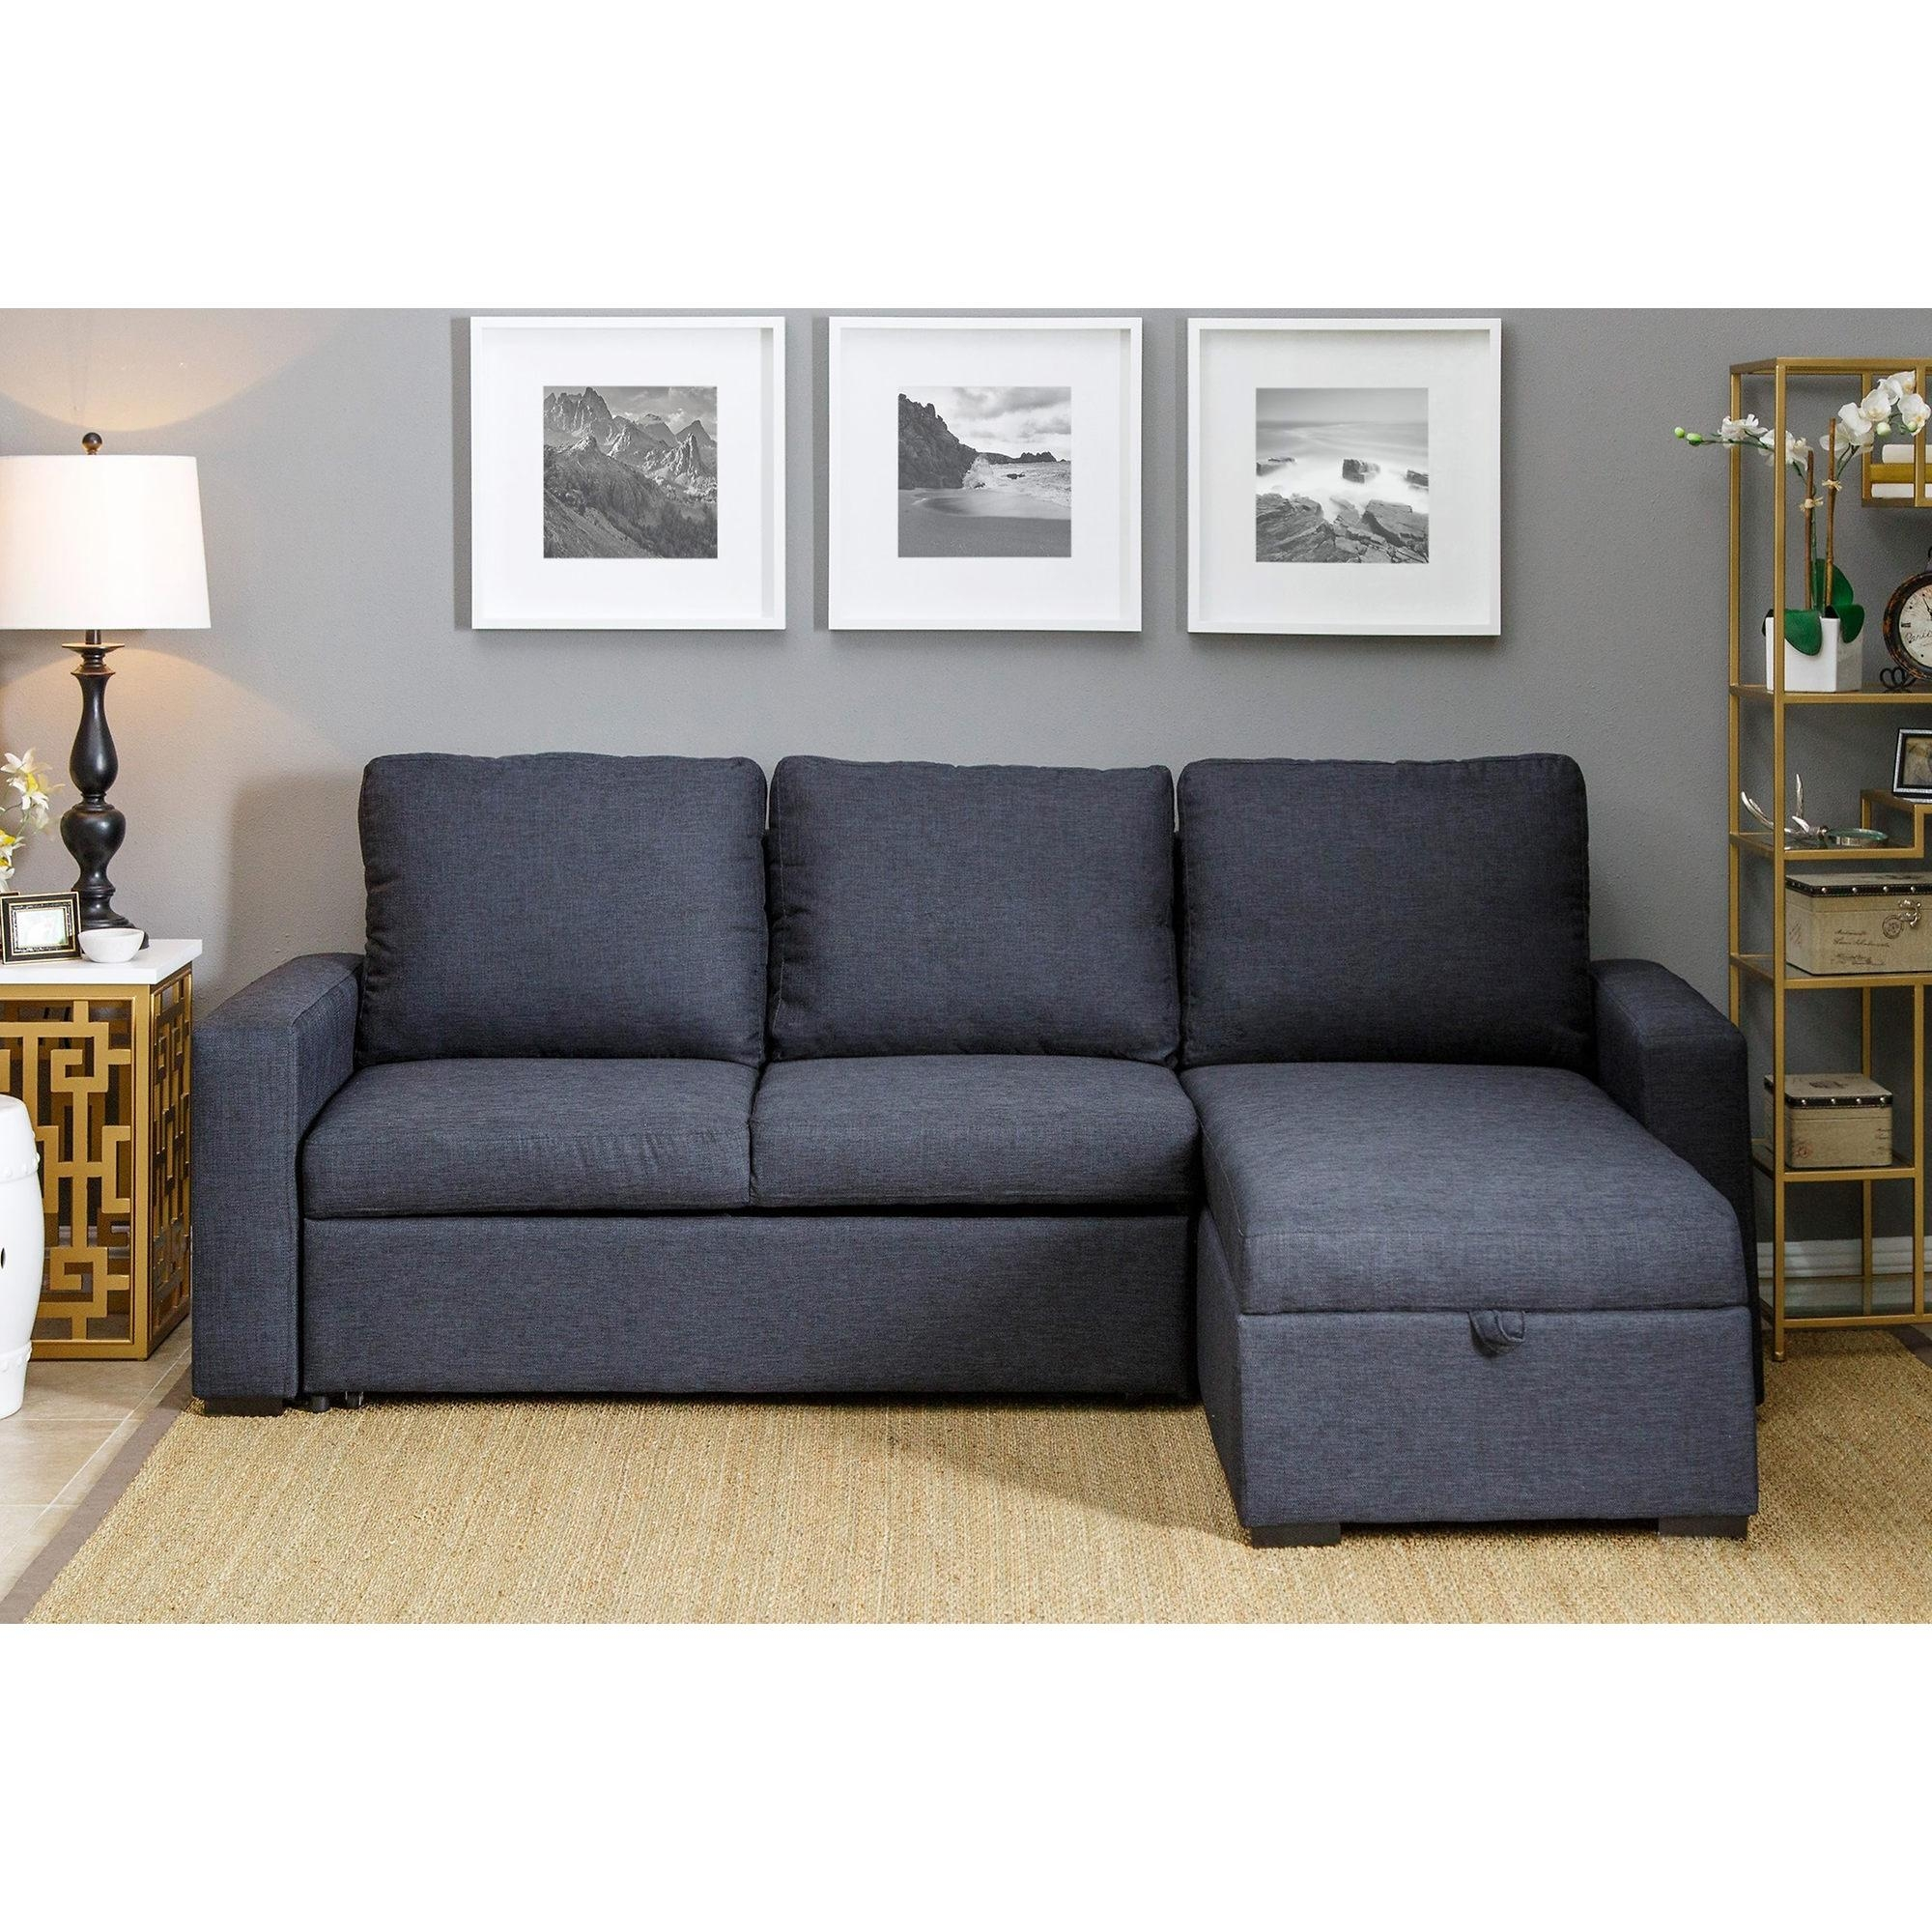 Sofas Center : Beautiful Abbyson Living Charlotte Beigeal Sofa And Pertaining To Abbyson Living Sectional (Image 14 of 15)